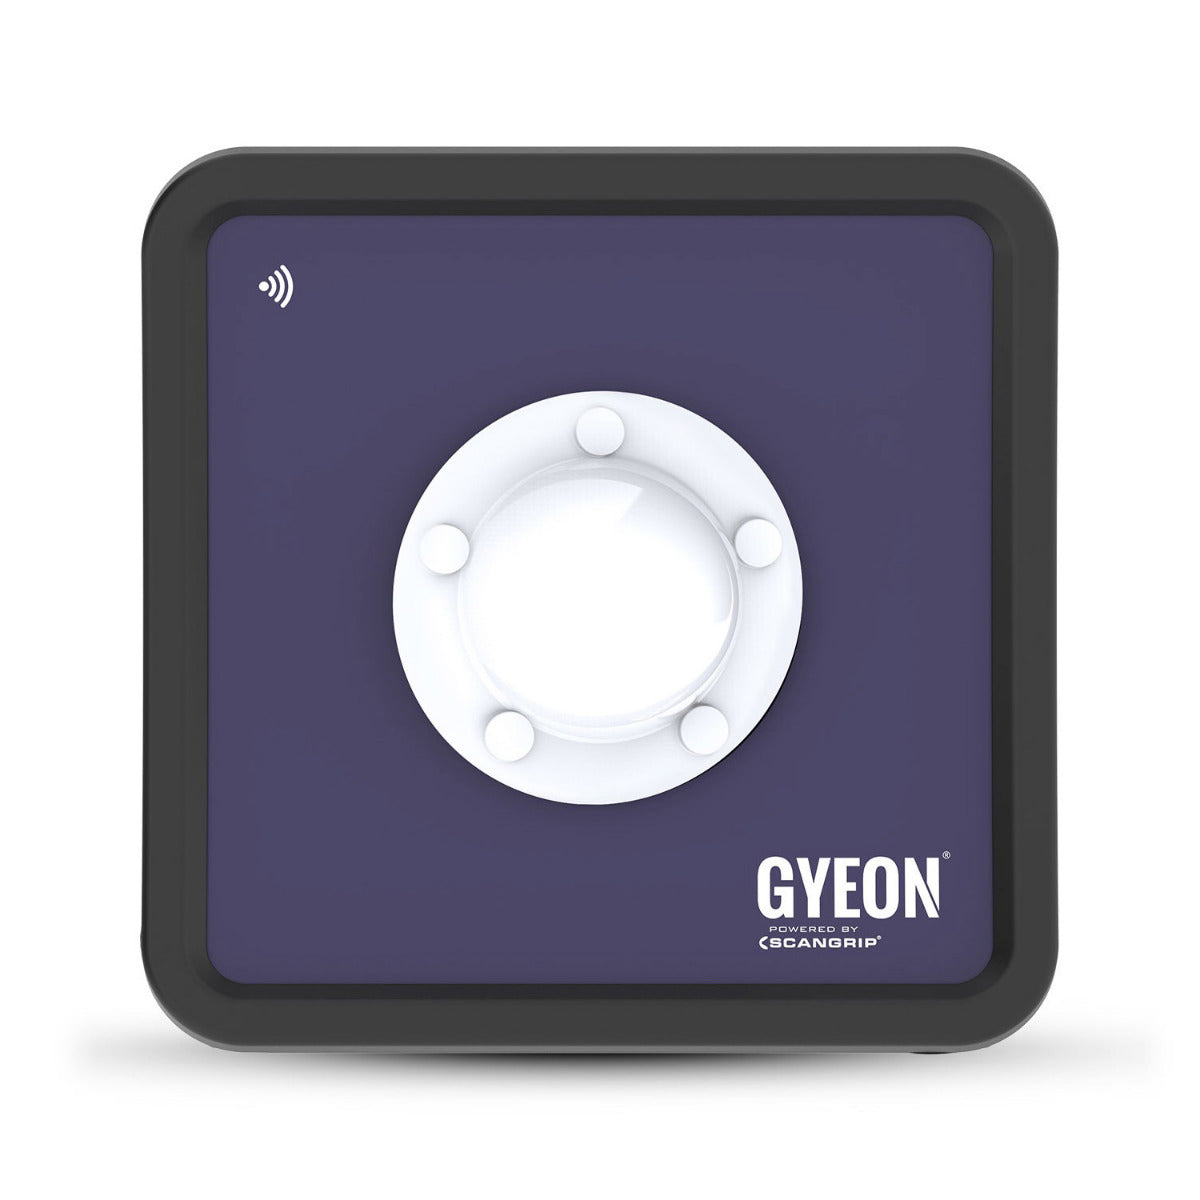 Gyeon PRISM Plus